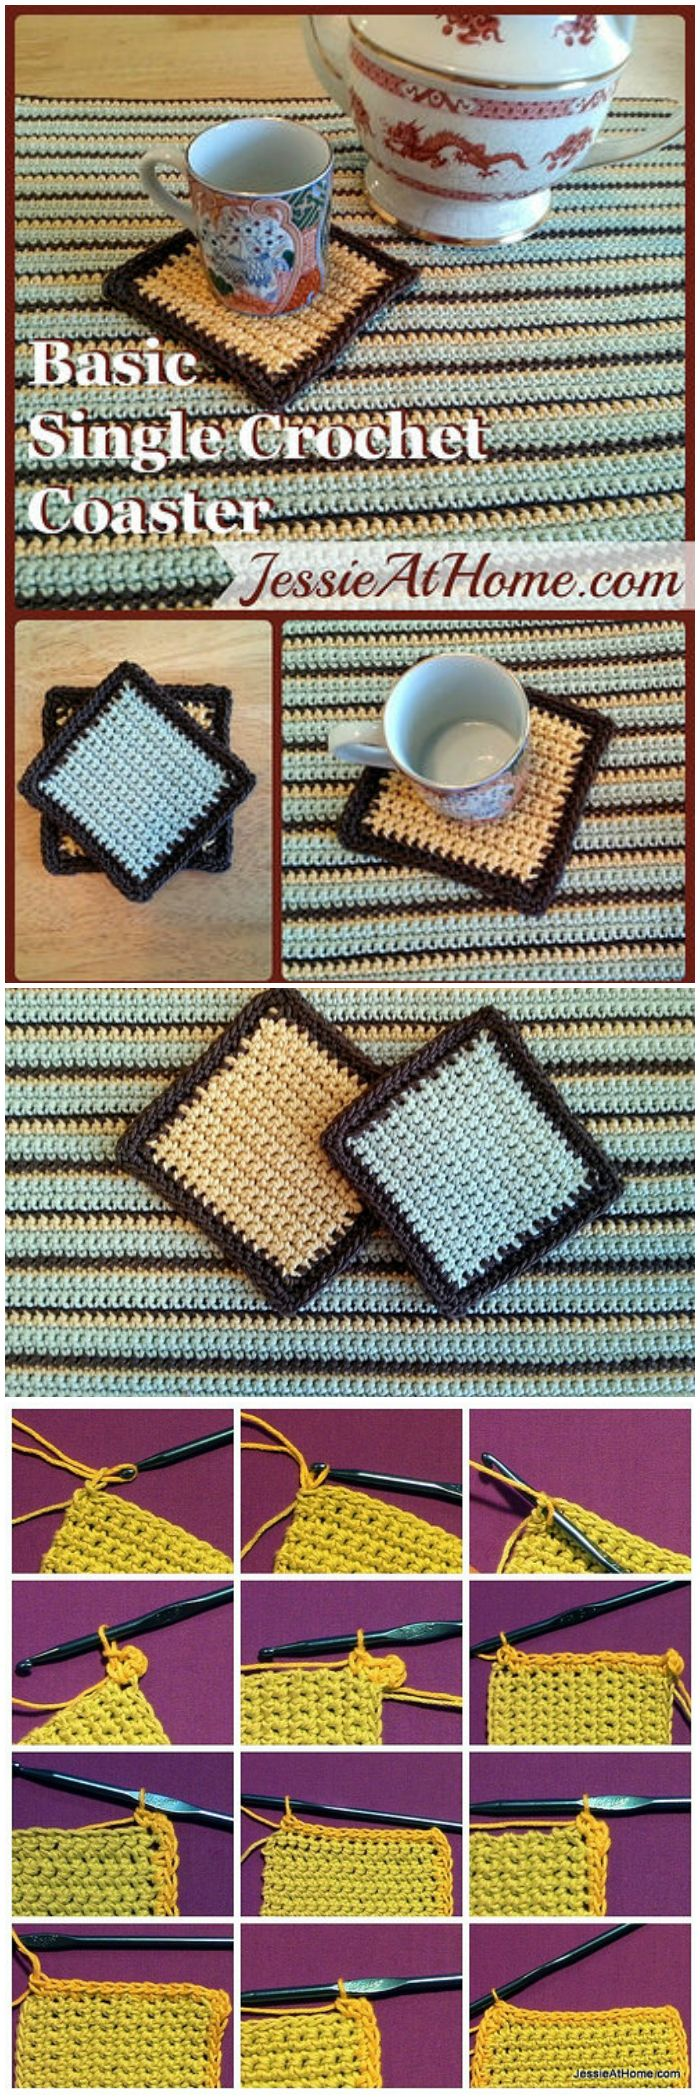 Best 25 crochet coaster pattern free ideas on pinterest crochet free crochet coaster patterns look very beautiful and cute with the soft yarn and the different bankloansurffo Gallery